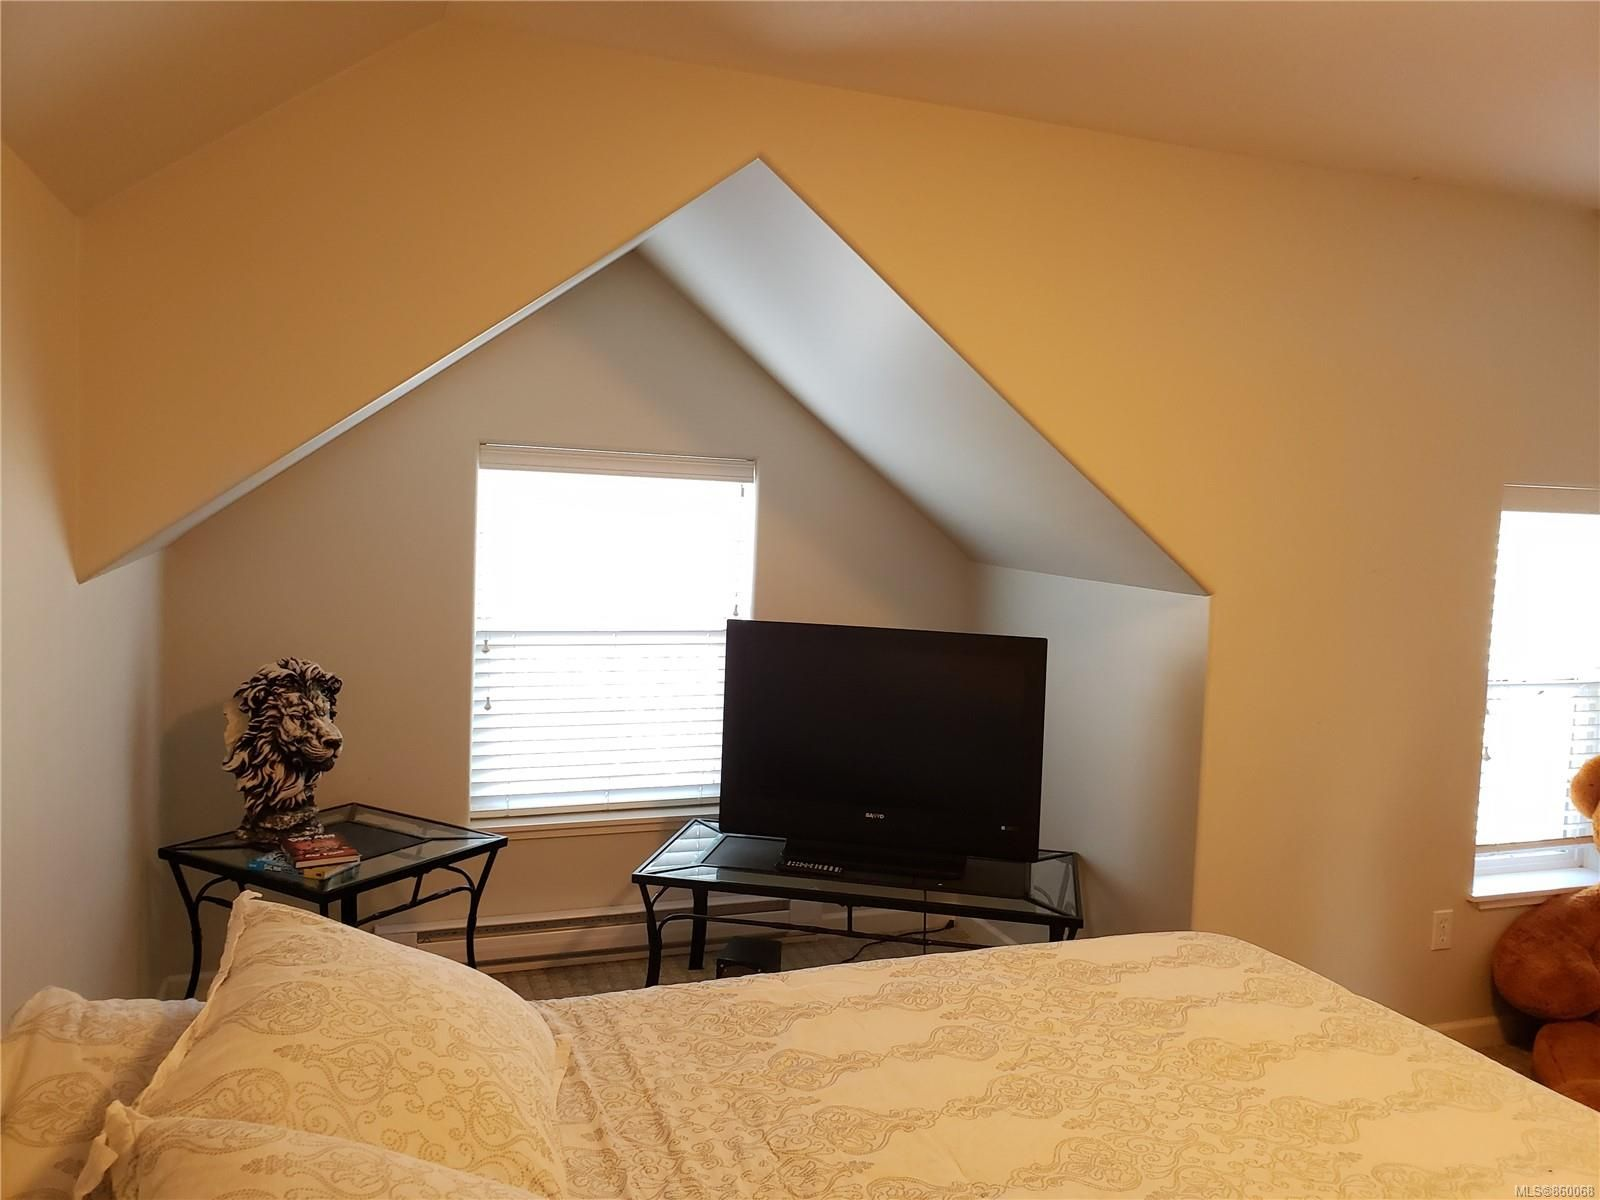 Photo 22: Photos: 105 2787 1st St in Courtenay: CV Courtenay City House for sale (Comox Valley)  : MLS®# 860068